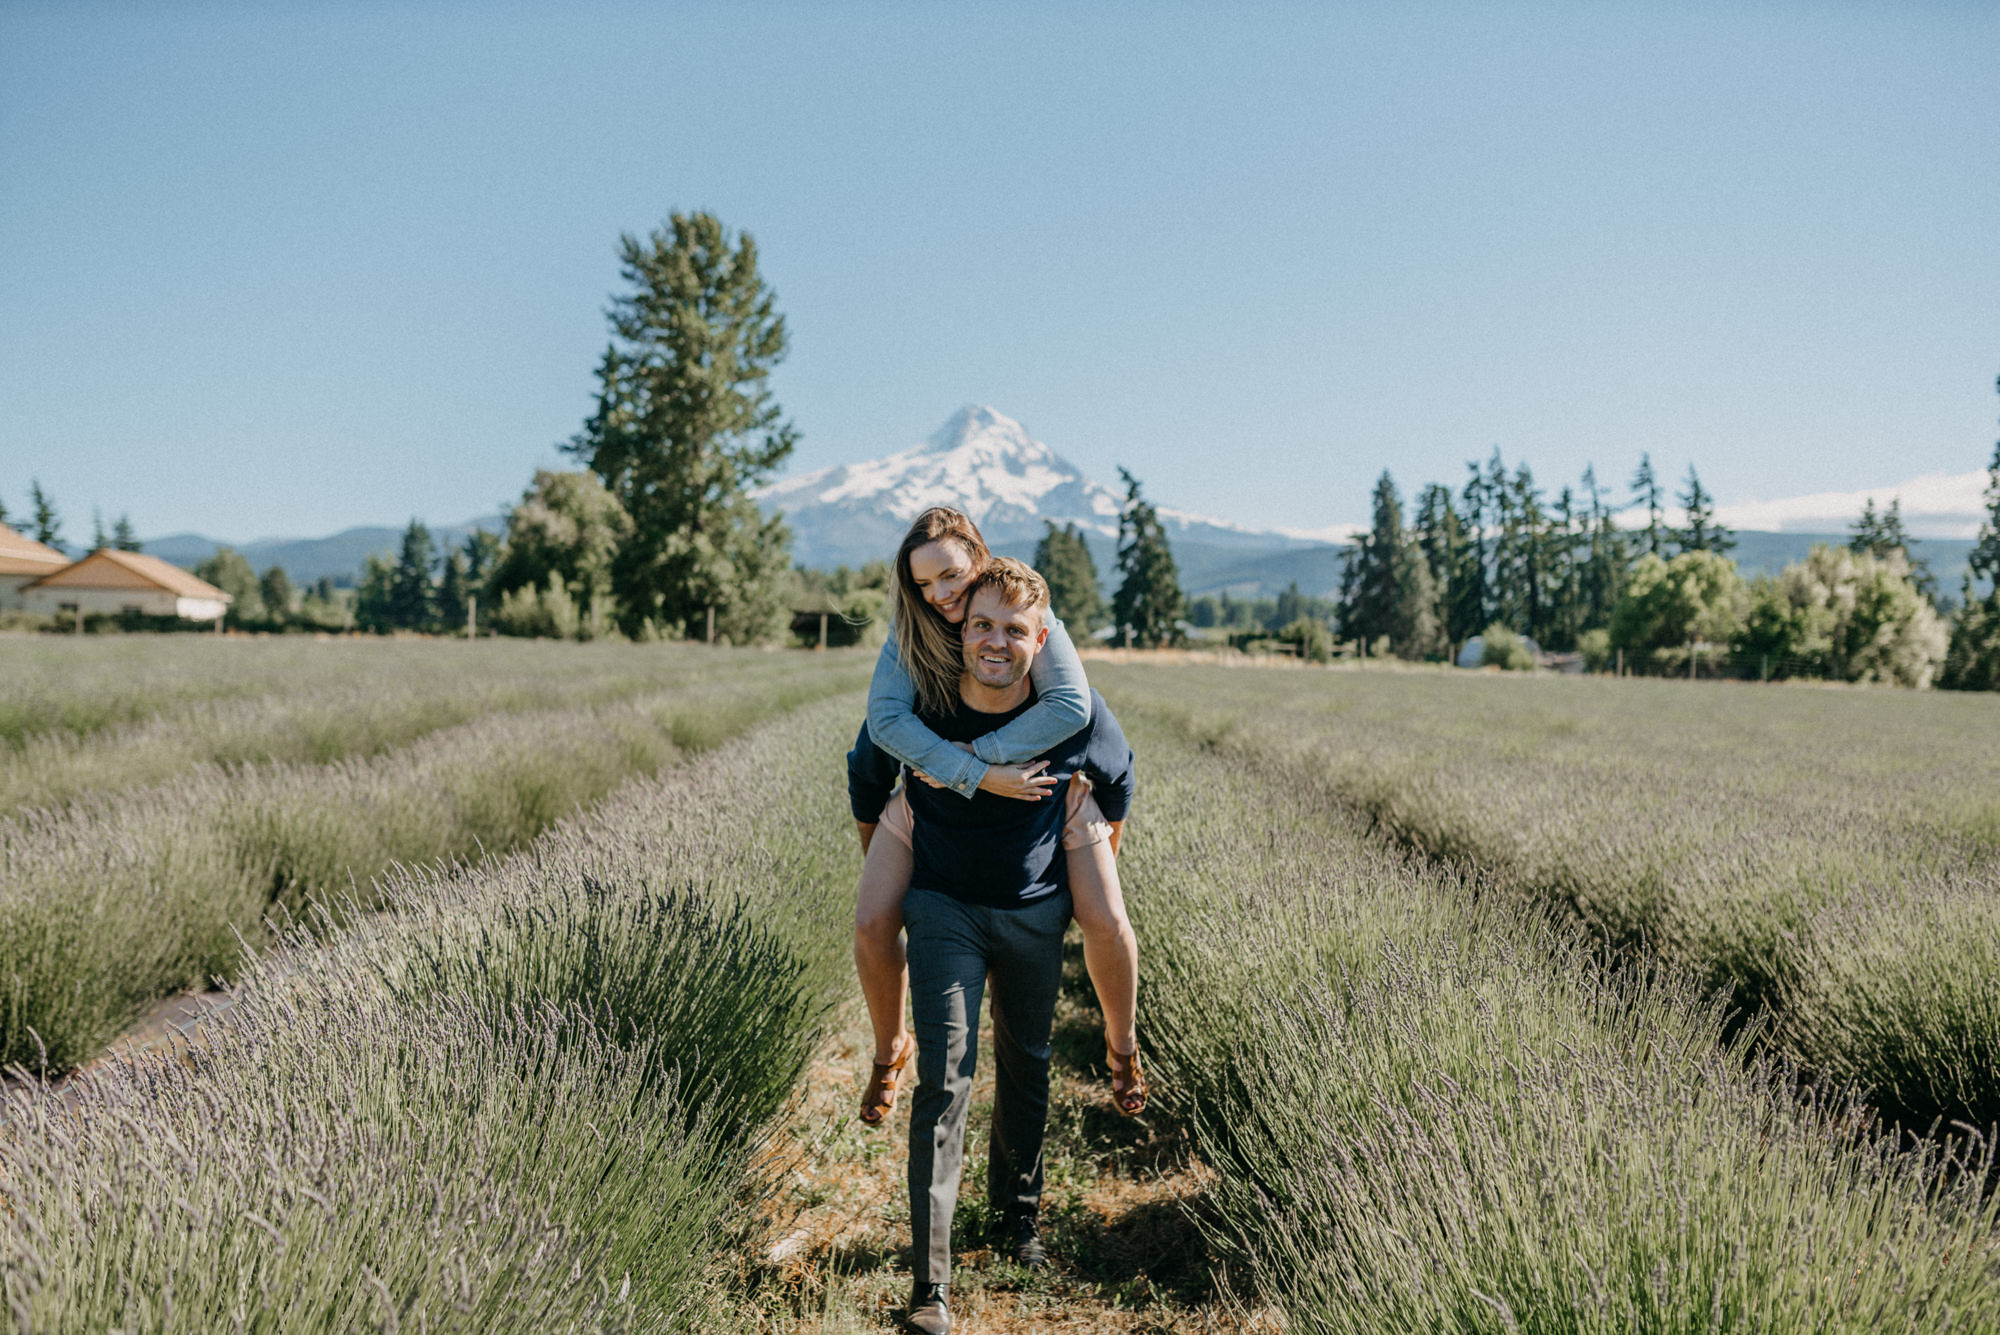 31-Mt-hood-lavender-farms-engagment-couple-summer-7809.jpg